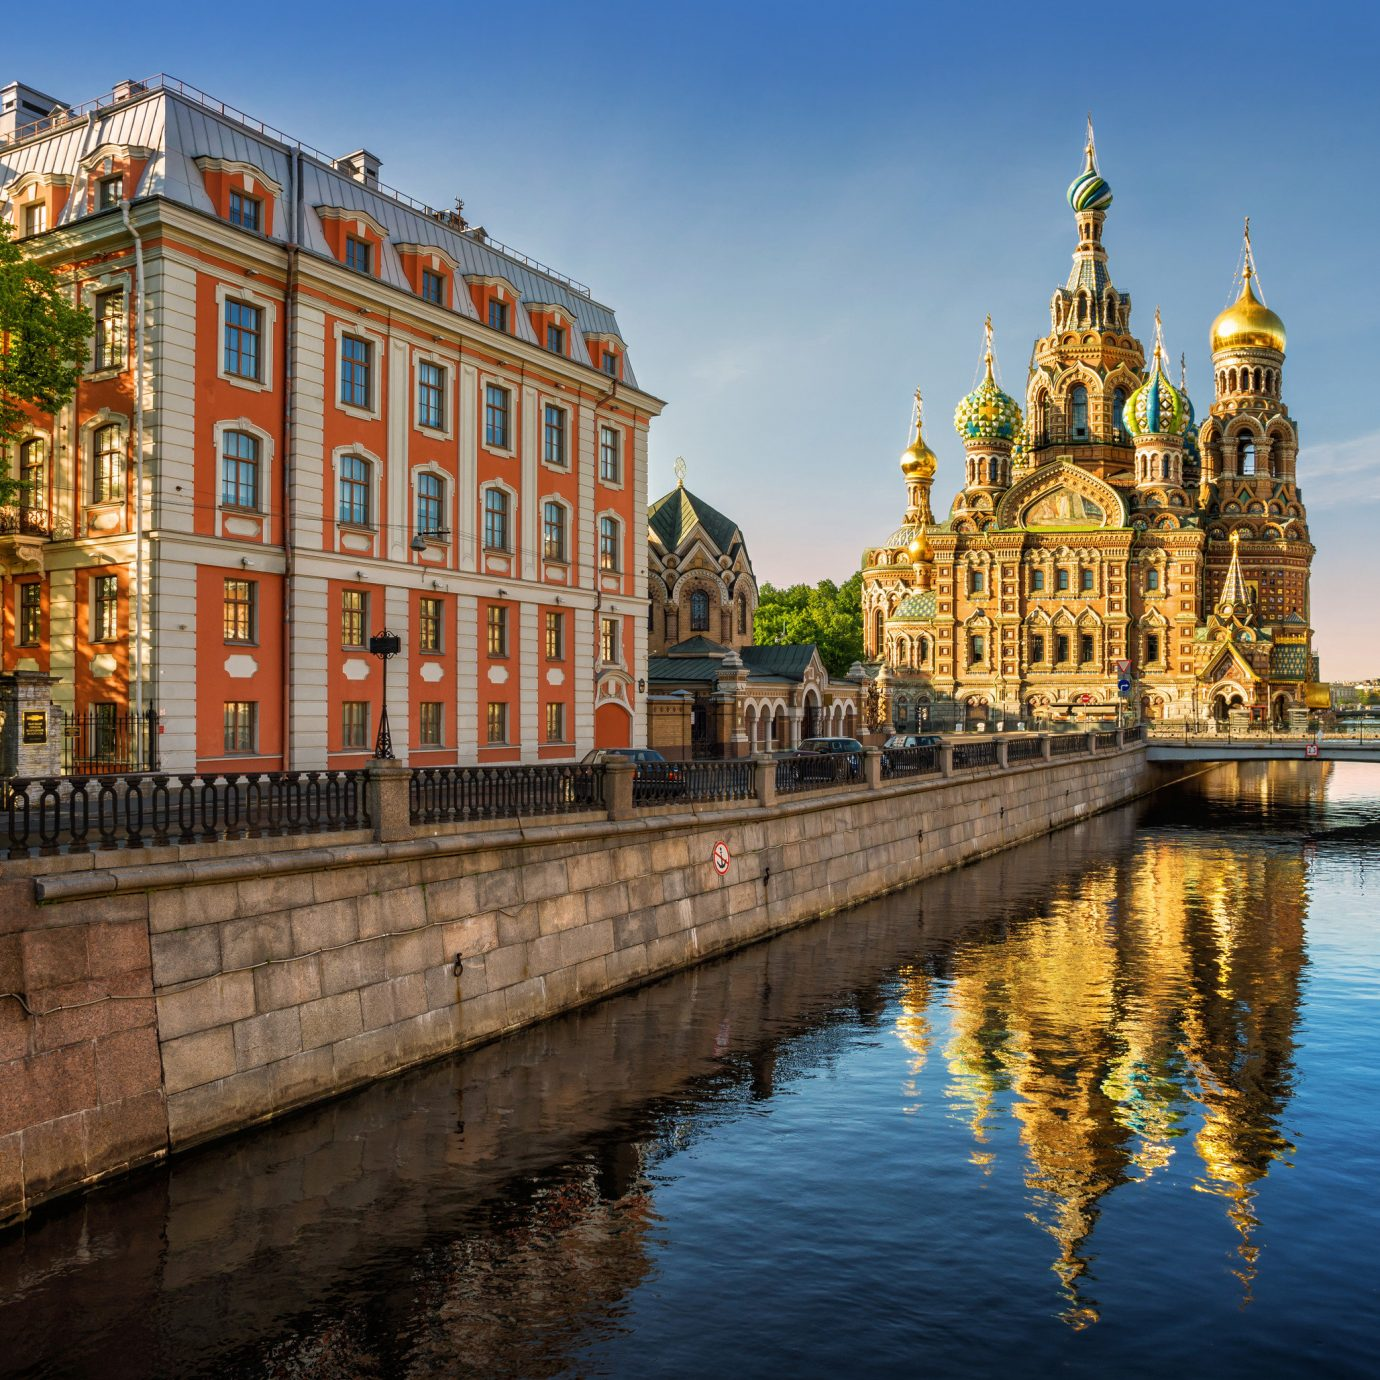 Hotels Luxury Travel water outdoor sky waterway reflection landmark body of water City Canal Town tourist attraction urban area cityscape River plaza tourism building evening tree palace metropolis channel watercourse town square historic site château facade medieval architecture